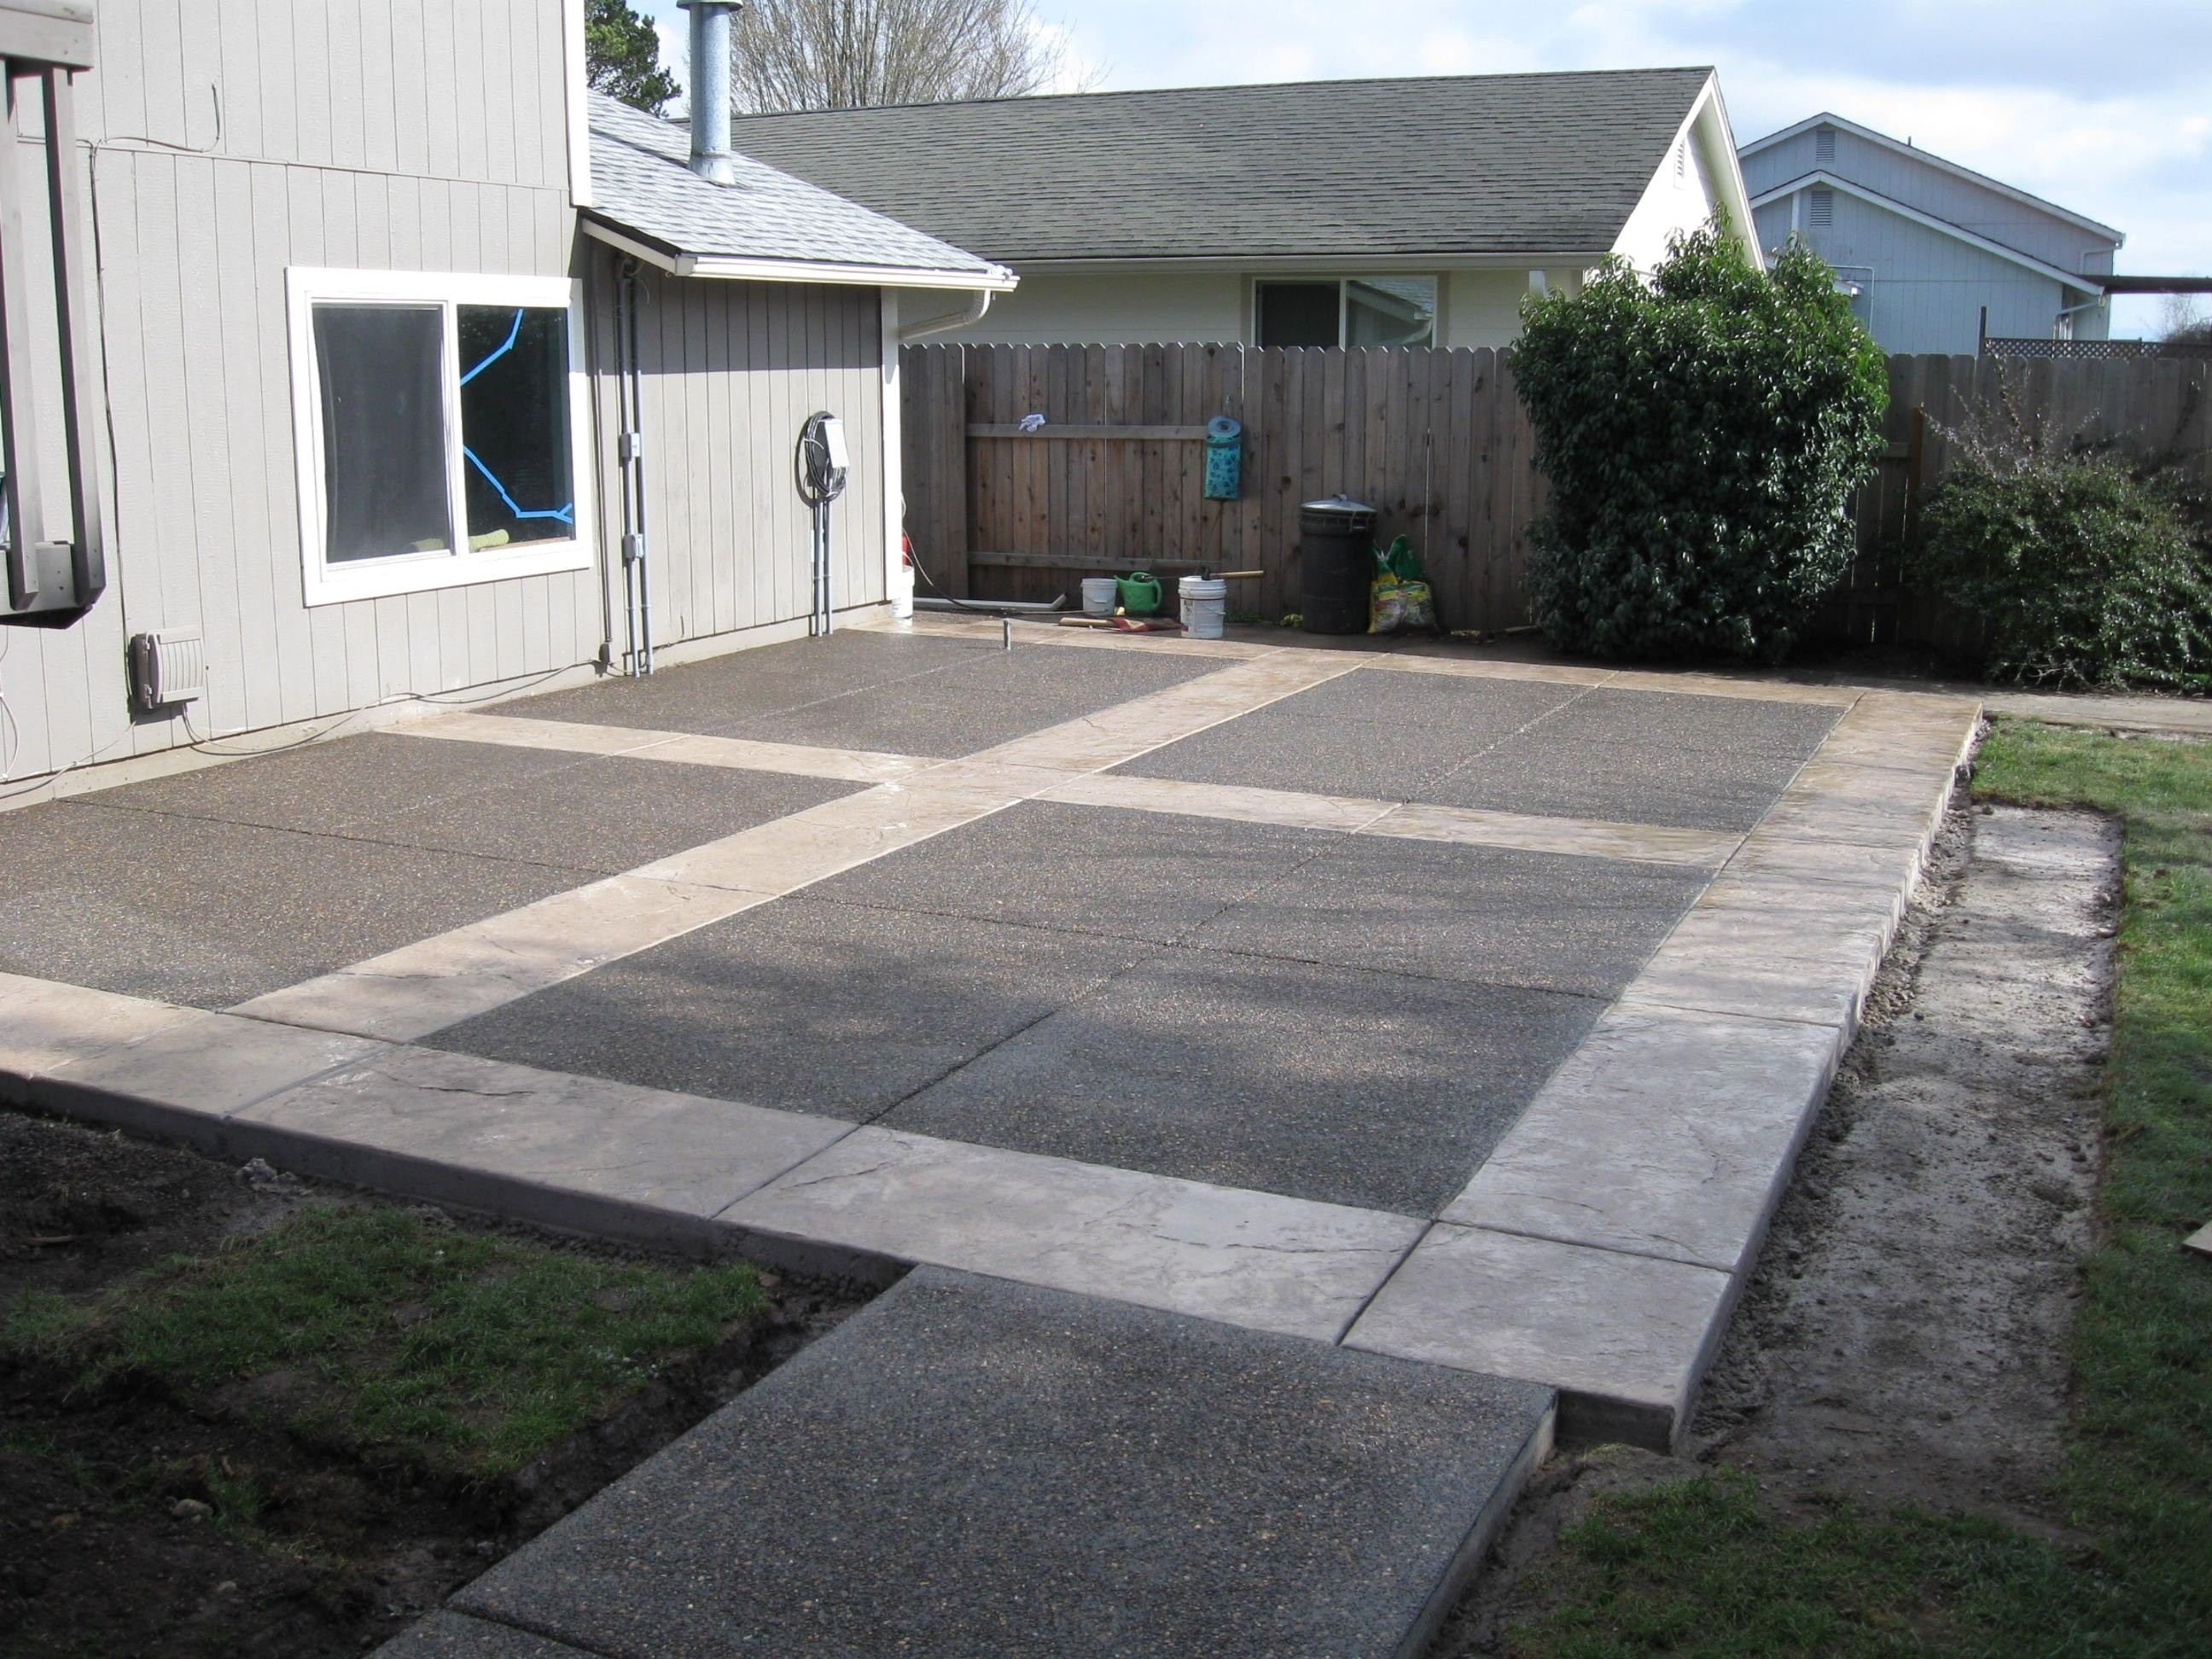 10 Best Concrete Patio Ideas For Small Backyards concrete patio ideas for small backyards stunning easy cement